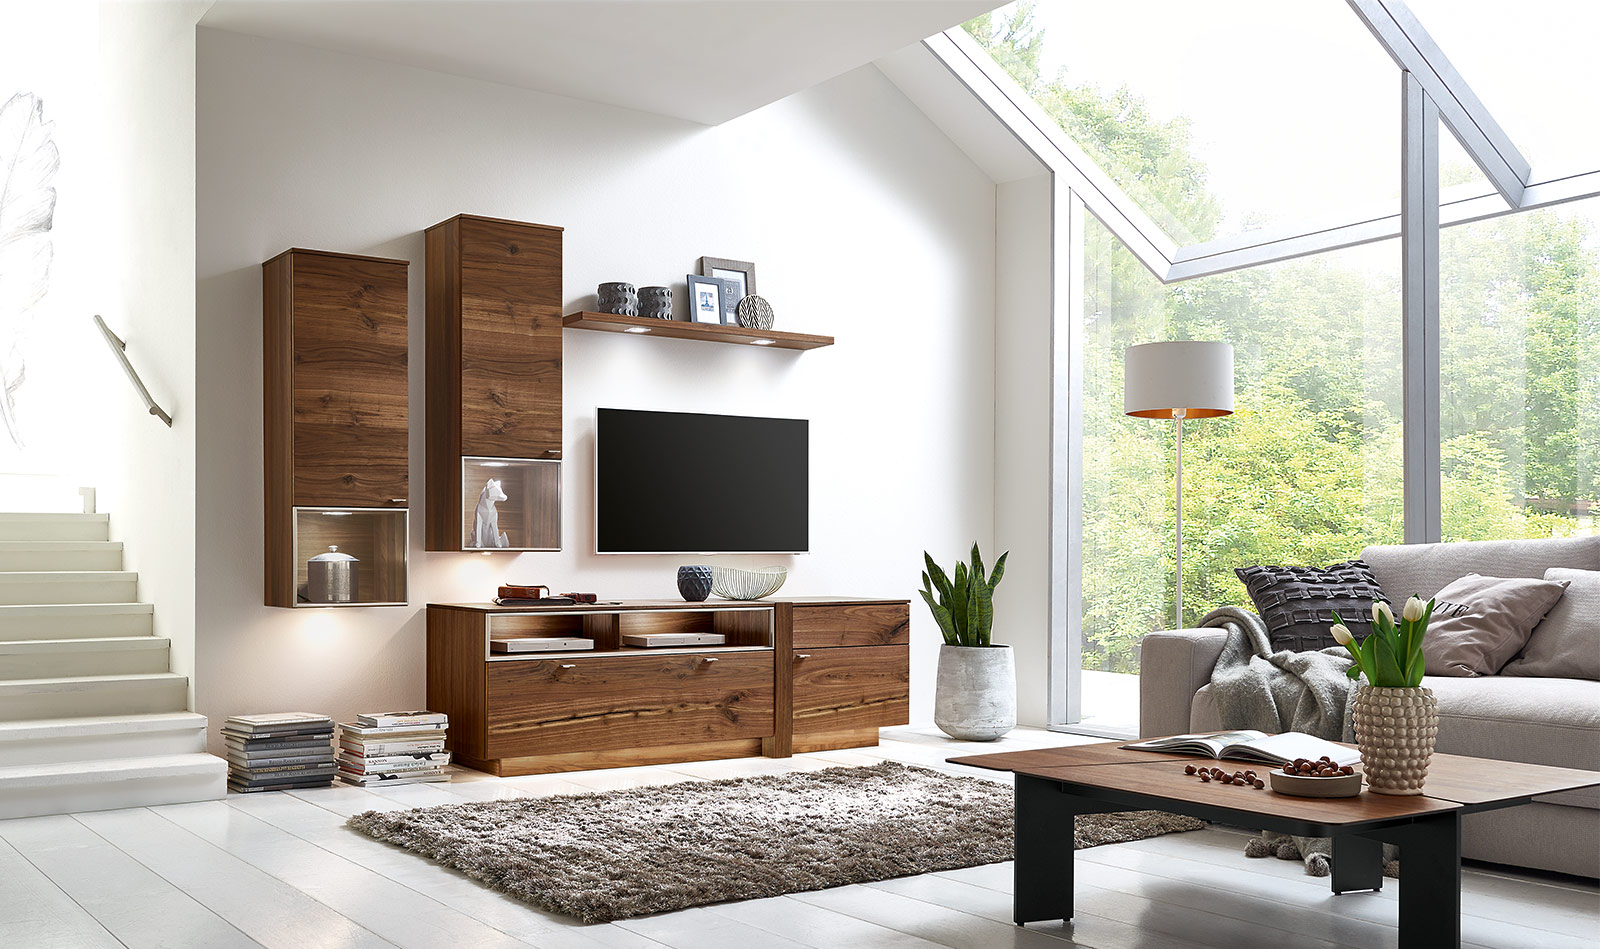 wohnzimmer design programm. Black Bedroom Furniture Sets. Home Design Ideas